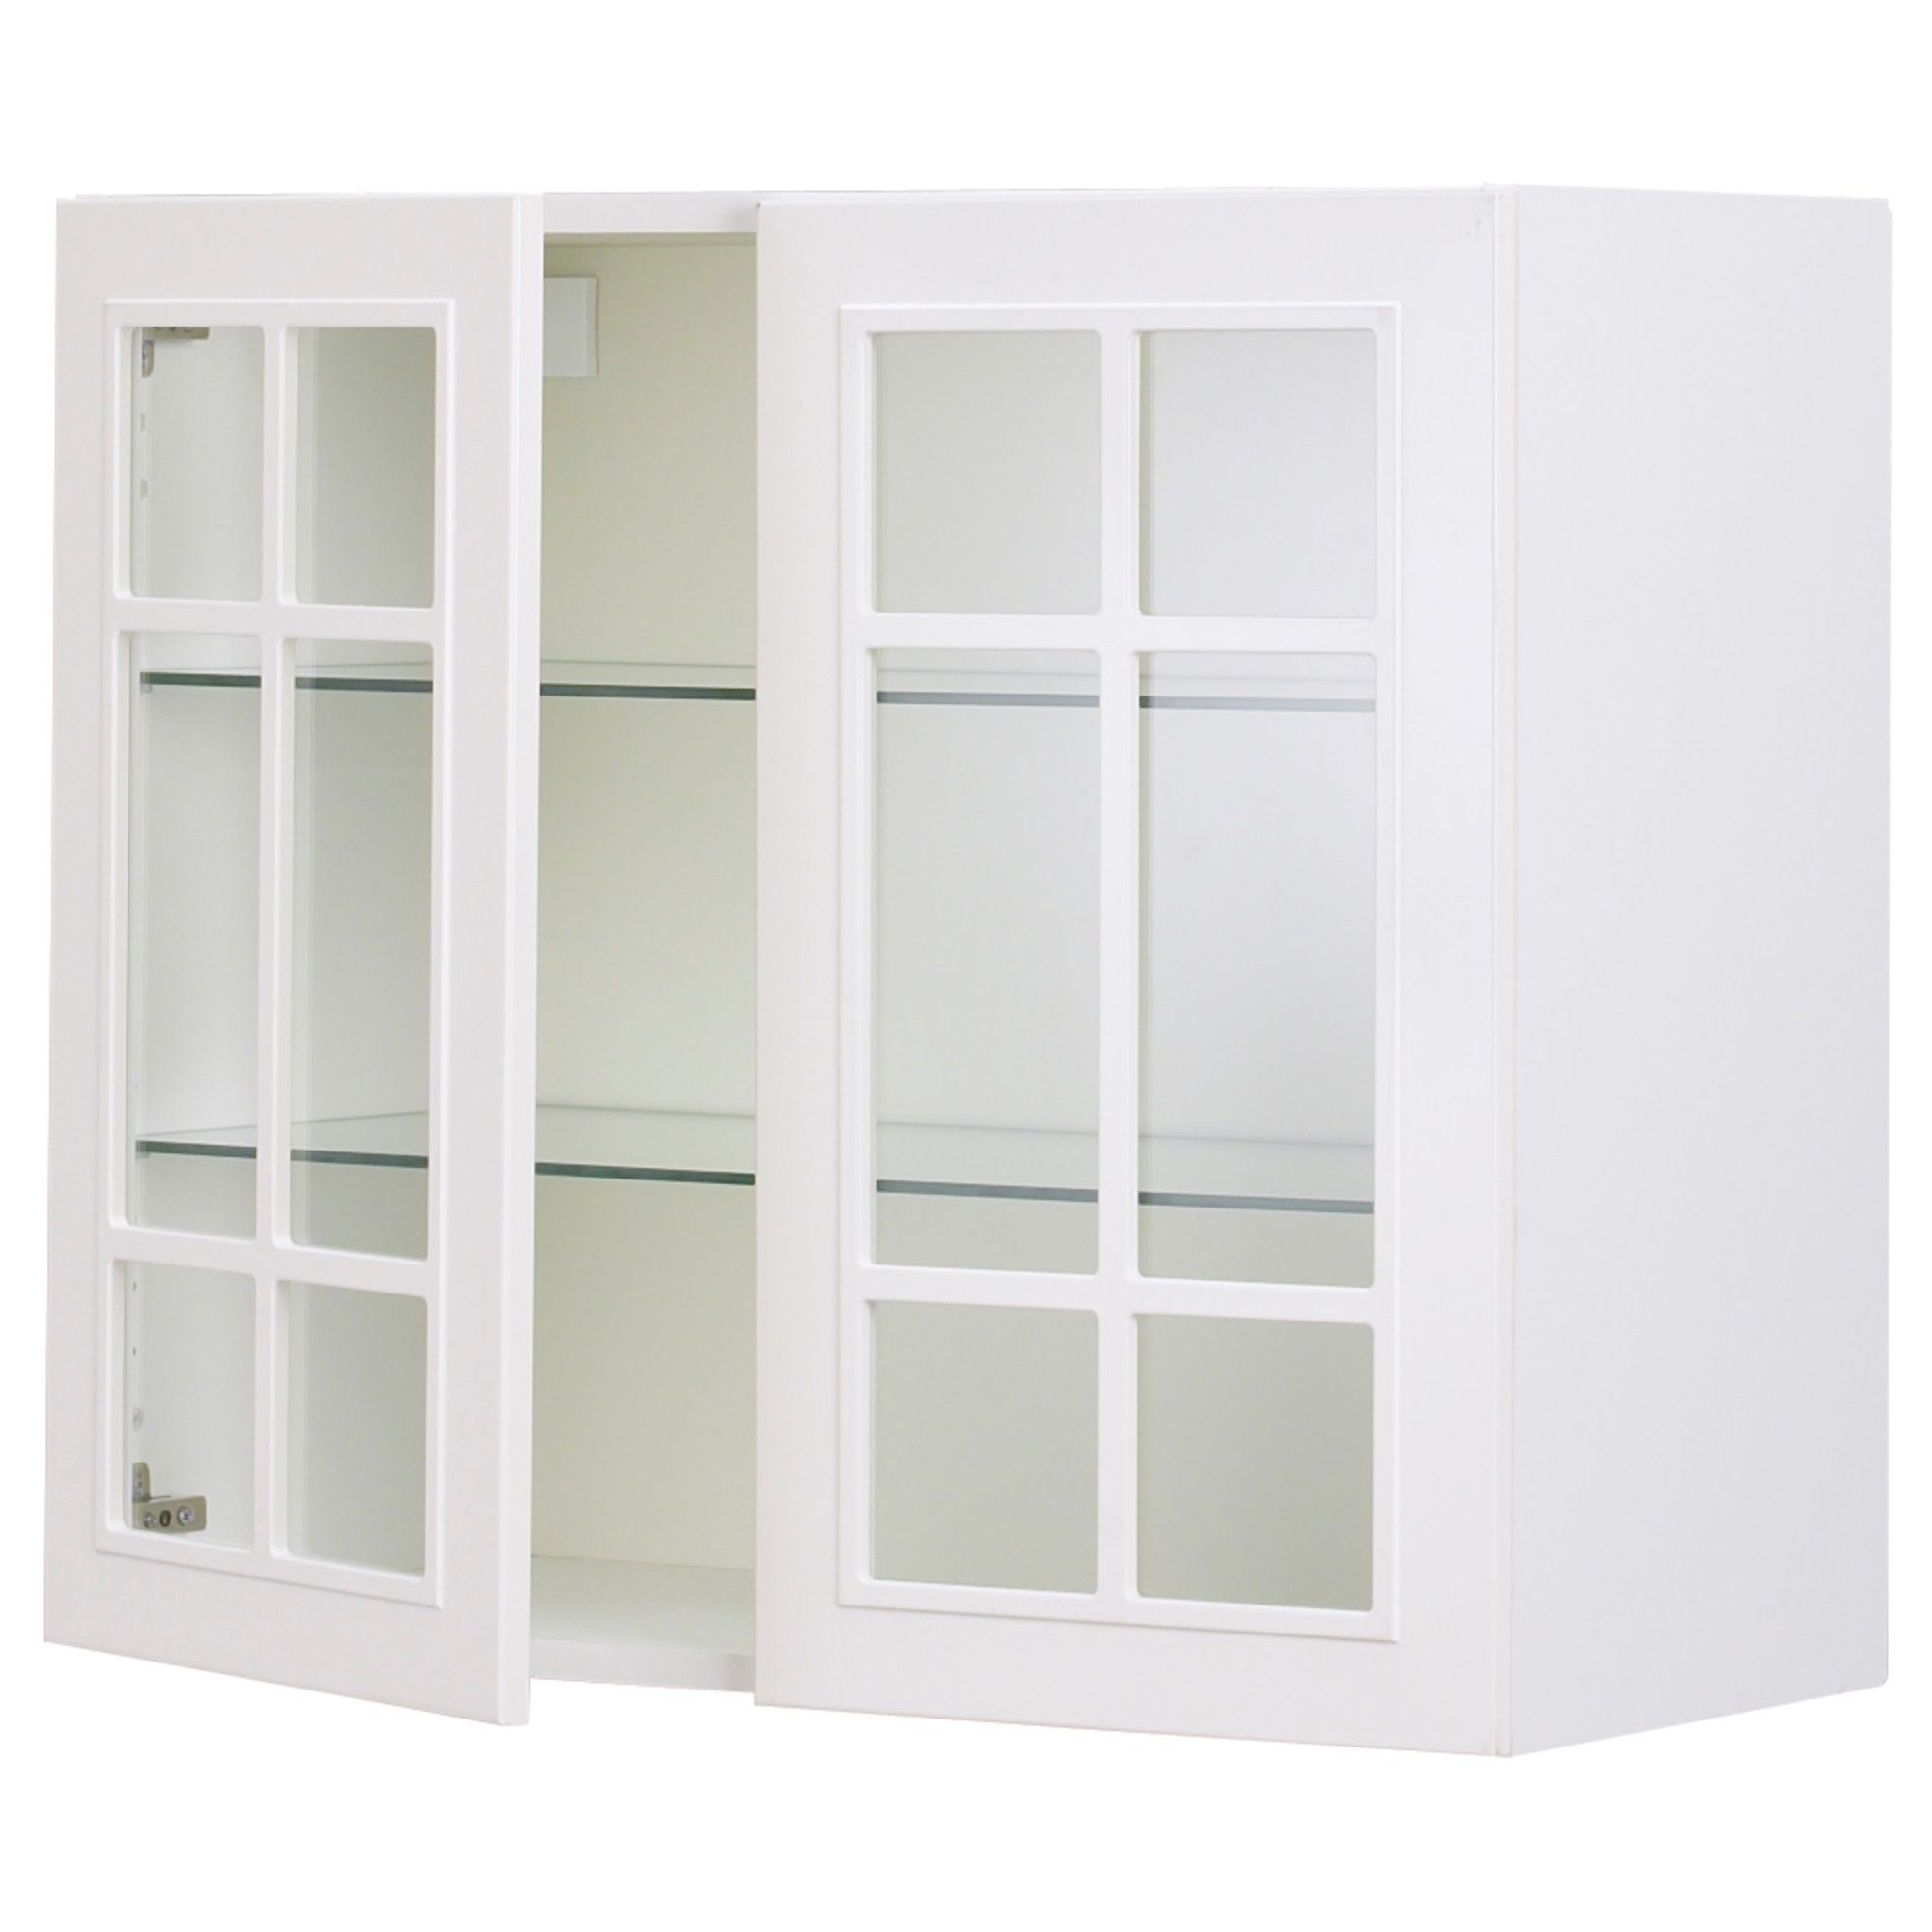 215 30 X 30 Glass Front Wall Cabinet Akurum Wall Cabinet With 2 Glass Doors White St T